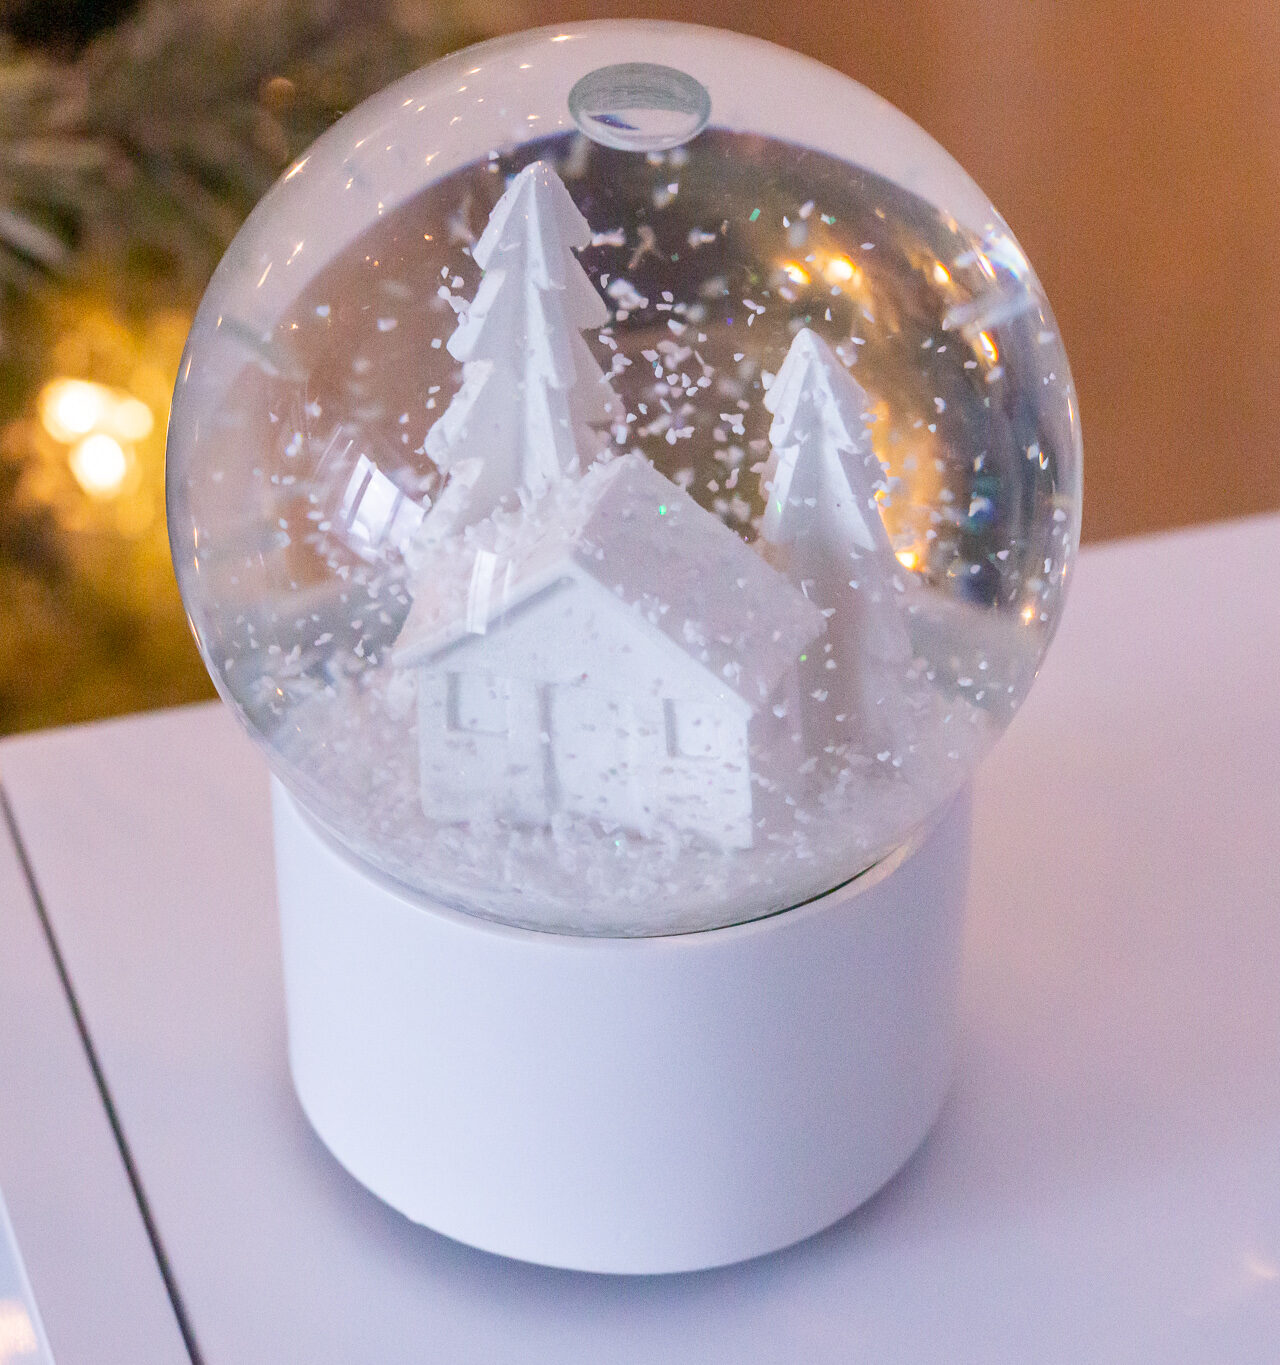 Saving Our Snow Globe: Being Eco-Friendly at Christmas